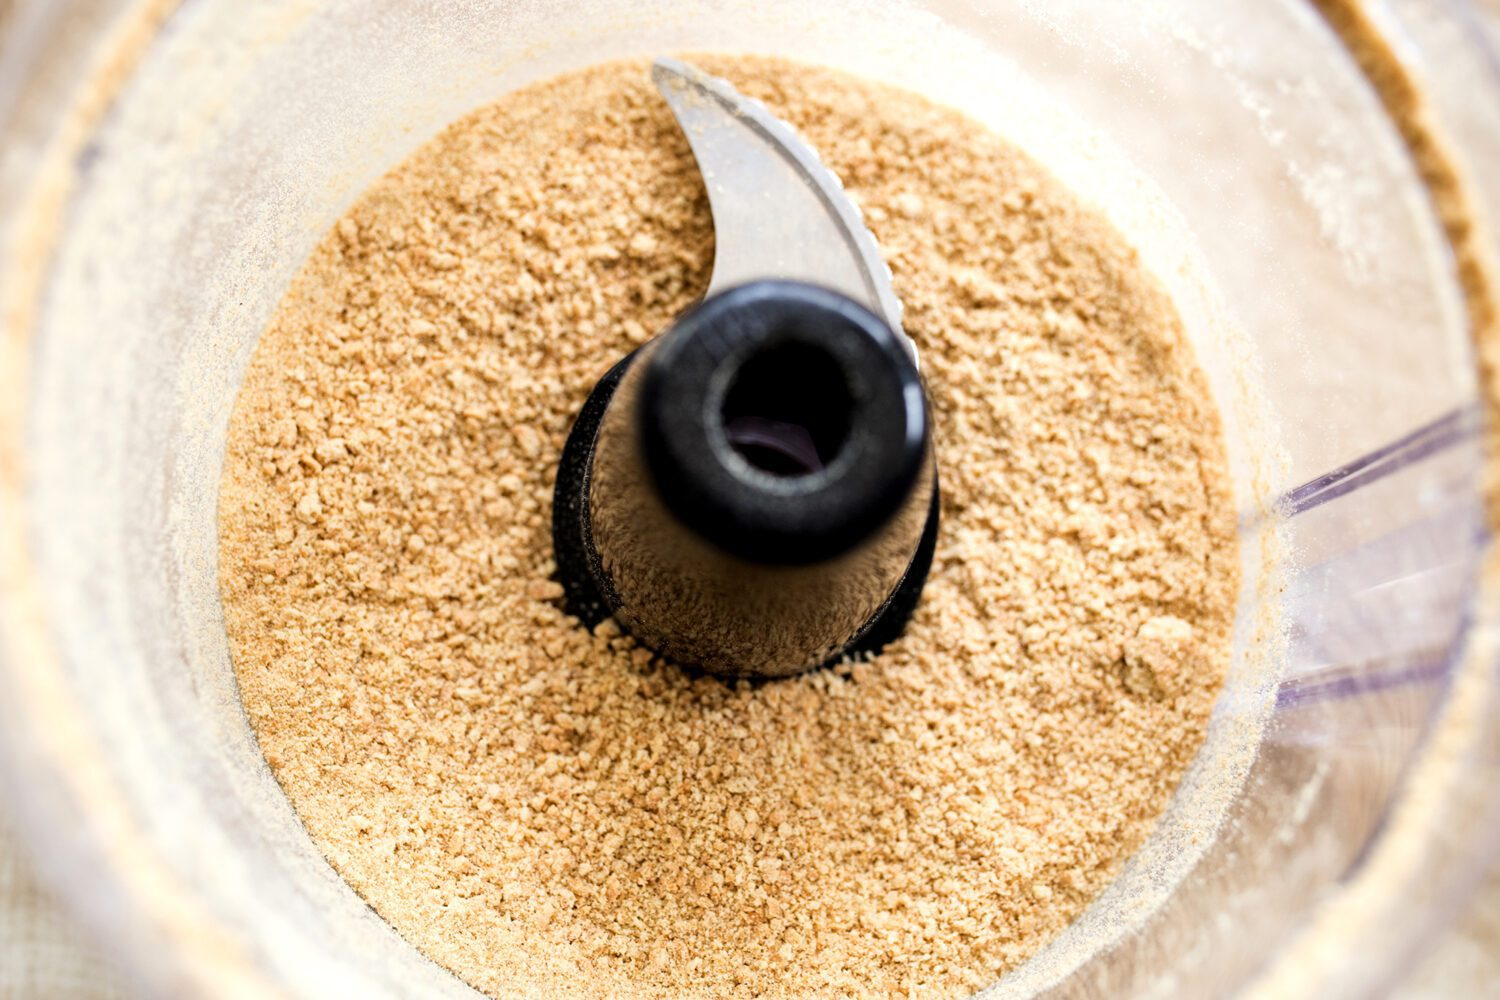 ground up graham crackers in a food processor